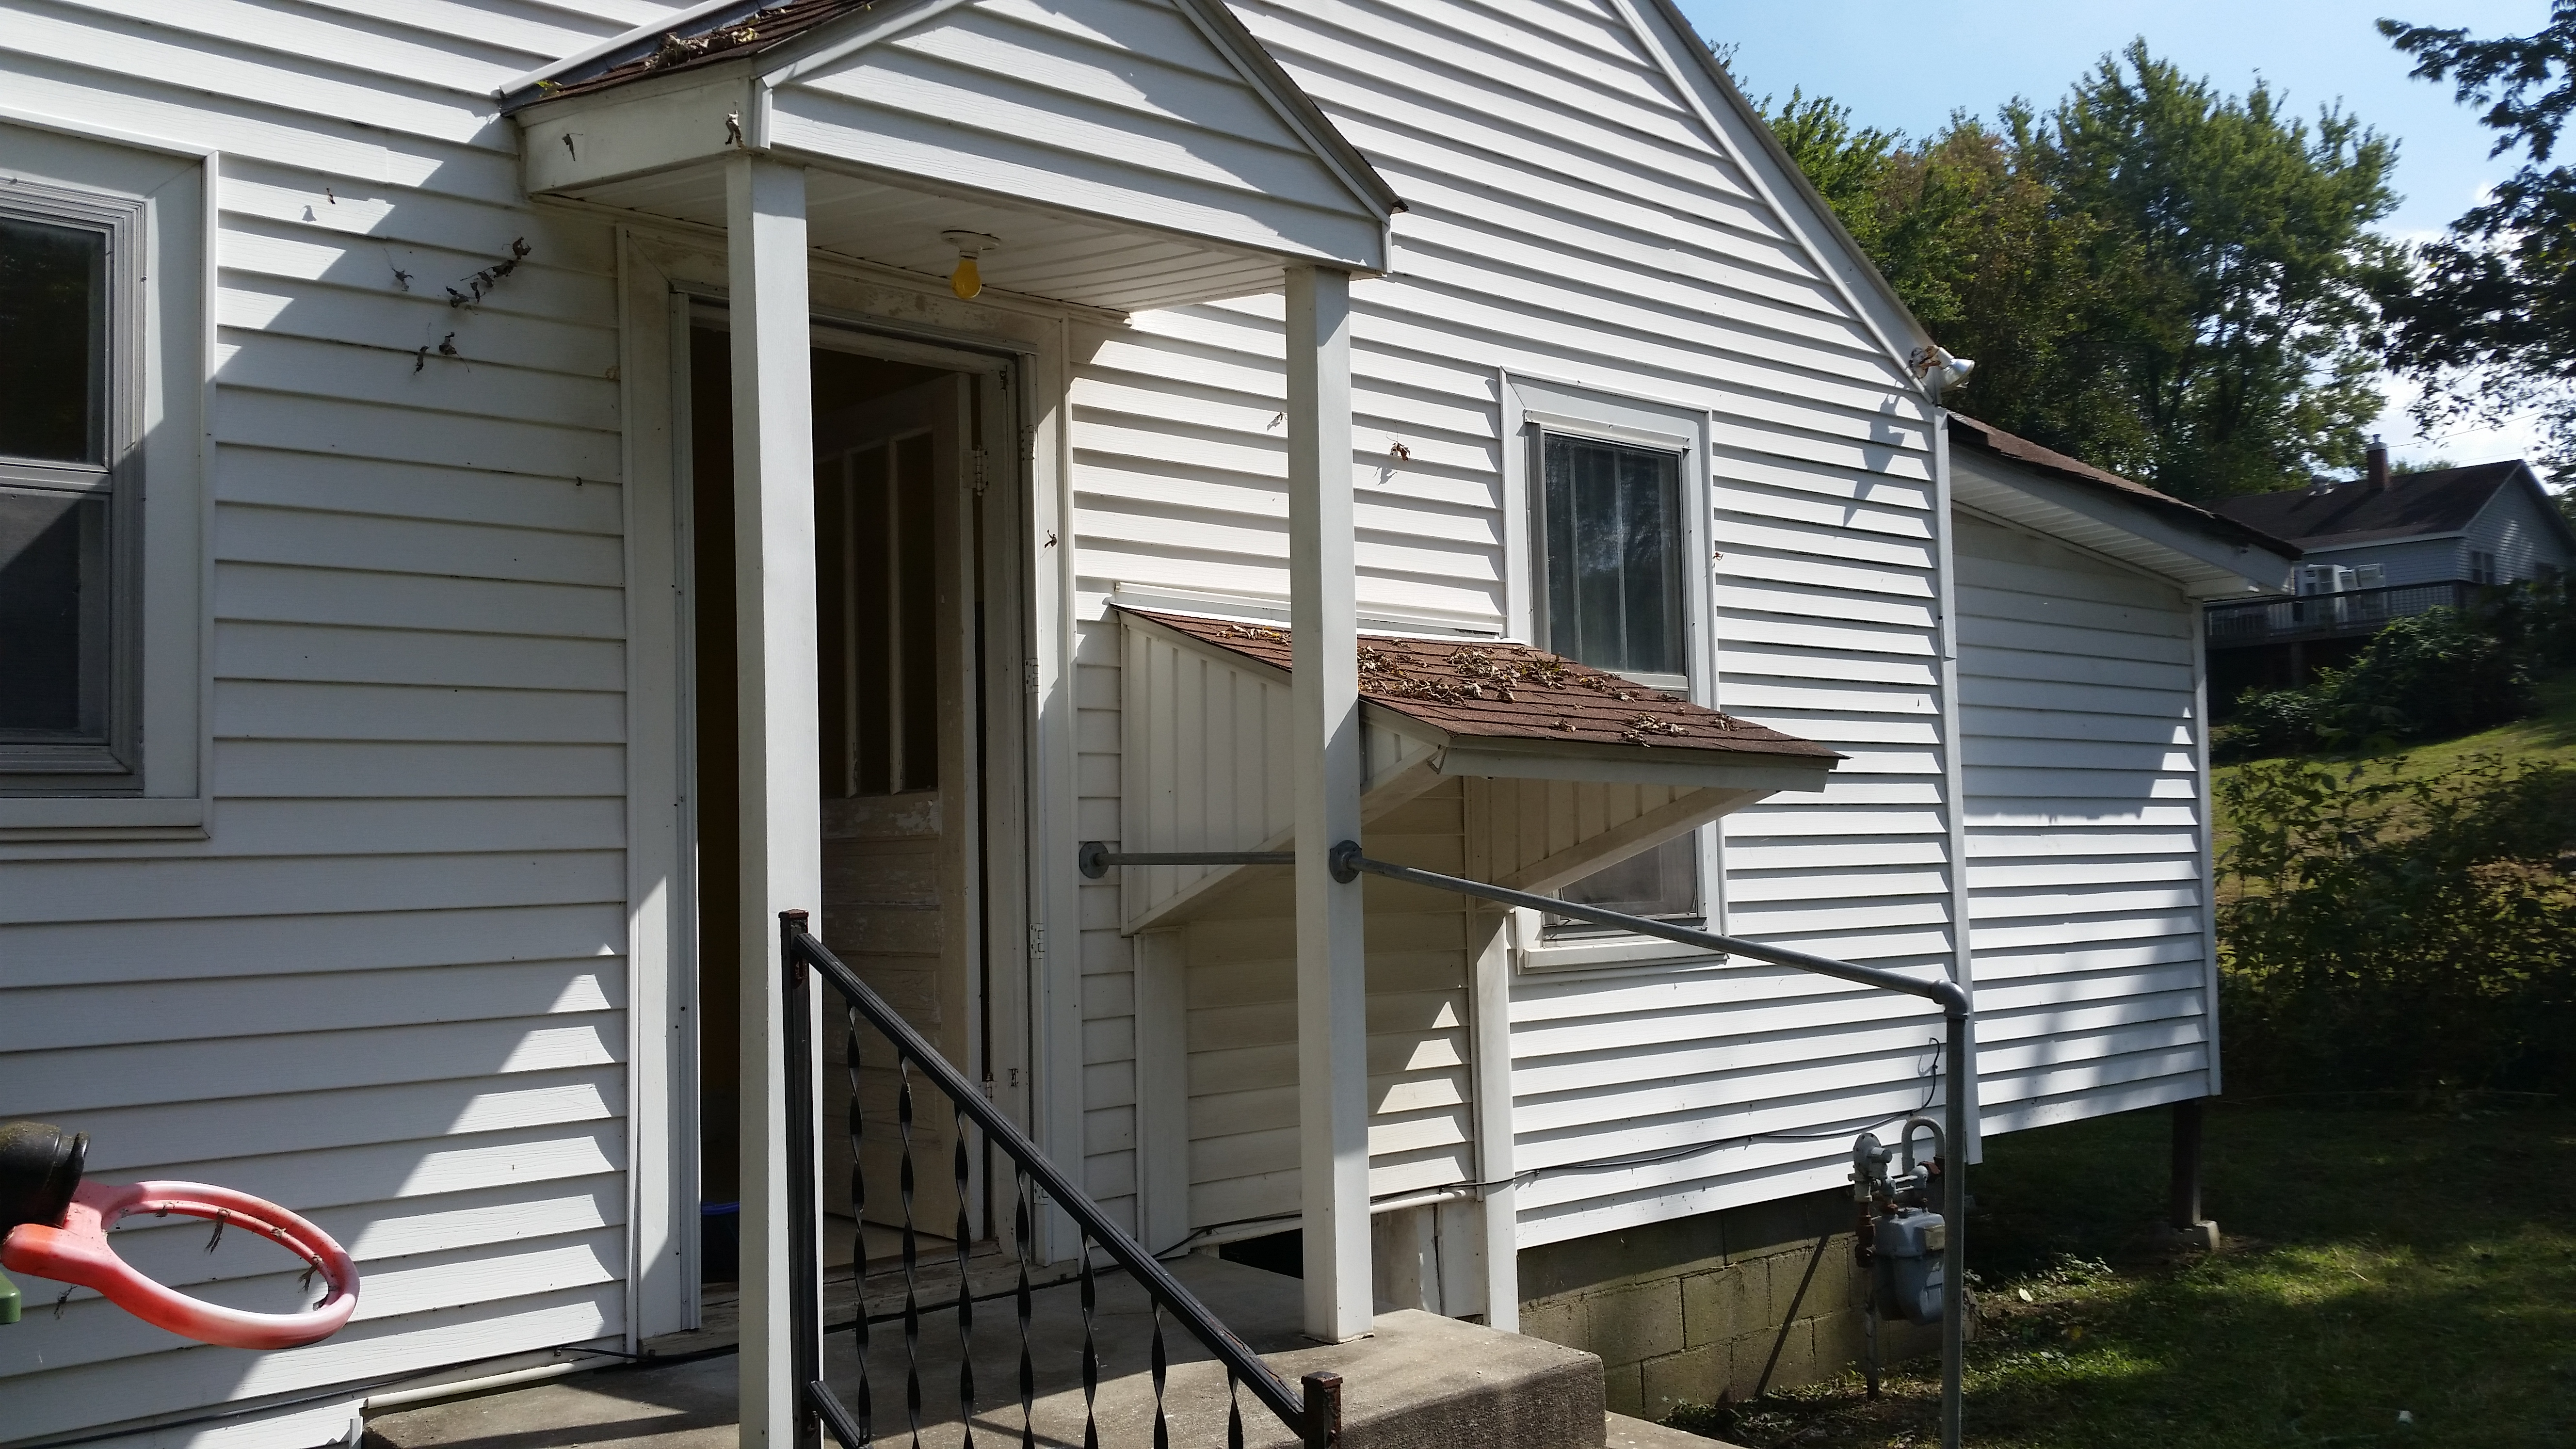 RENT TO OWN 2 Bedroom 1 Bath  2500 Down   599 Per Month. Carbondale Apartments for Lease   Murphysboro Apartments for Lease